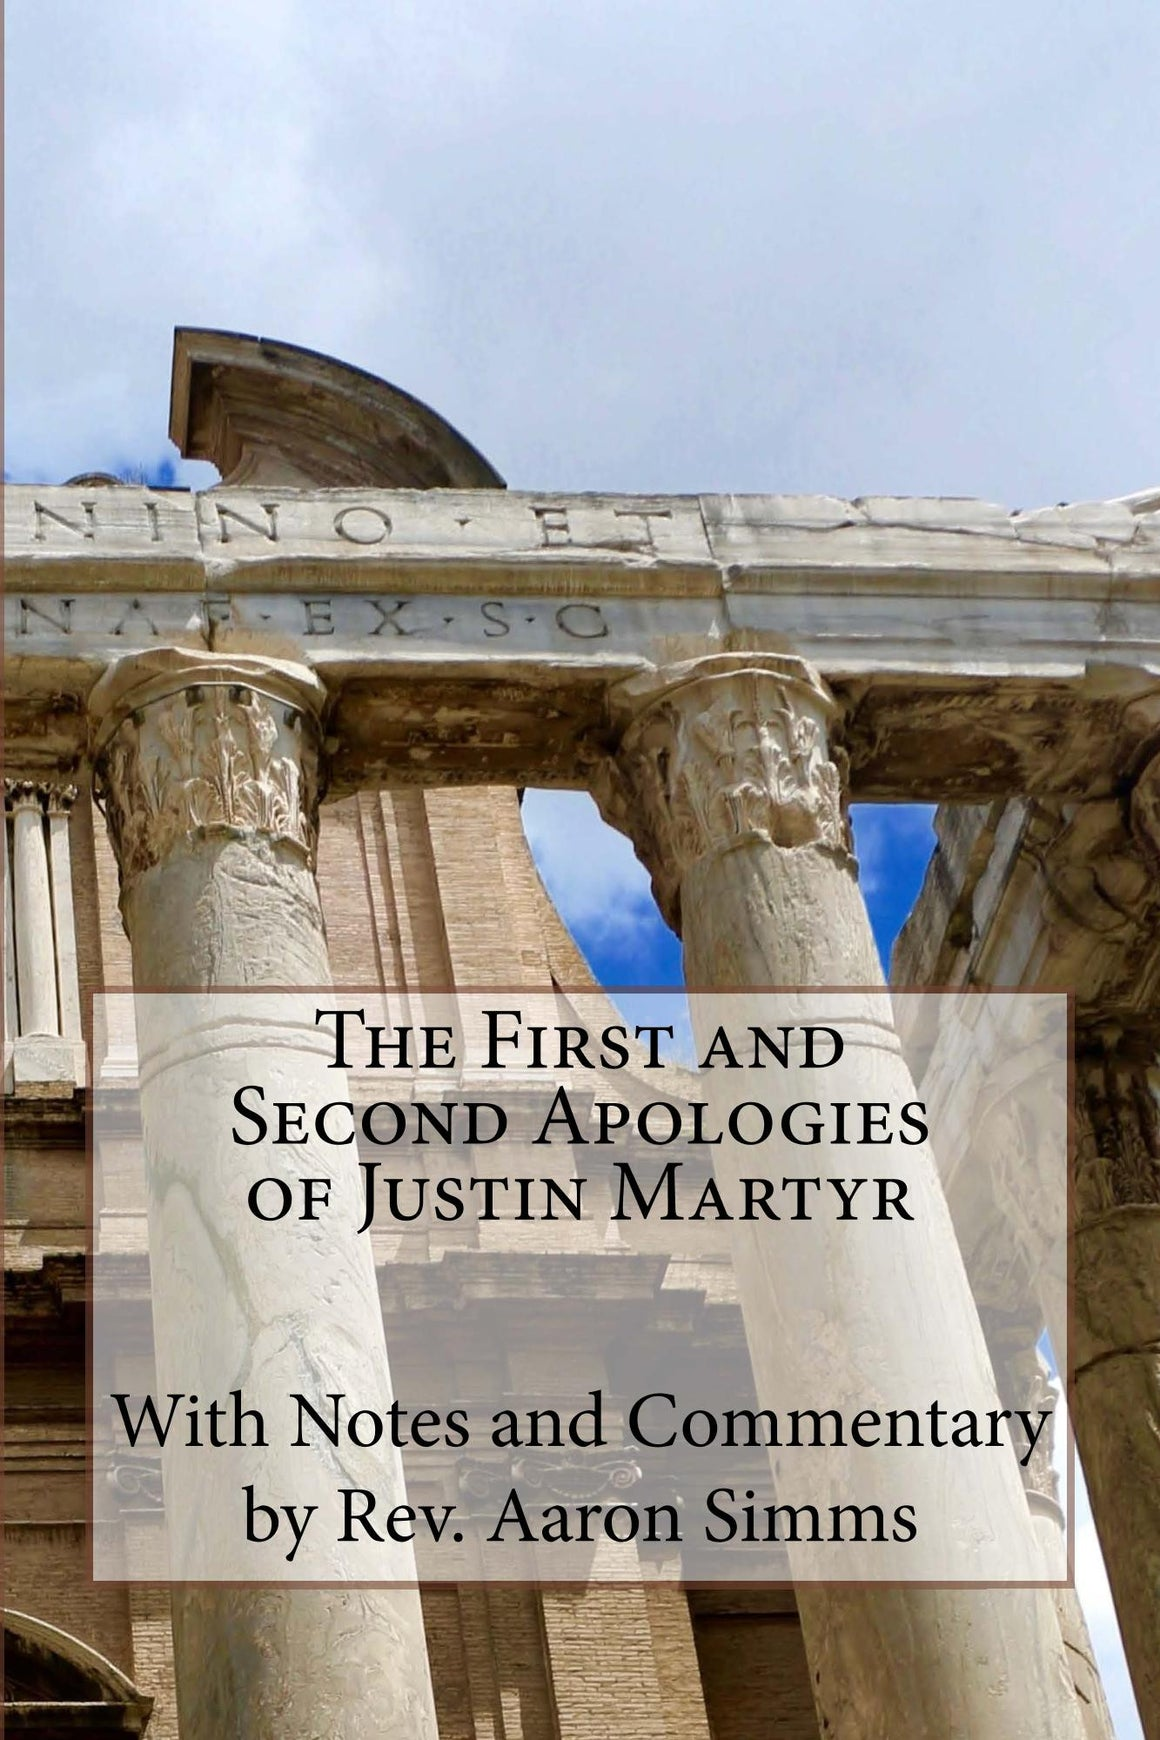 The First and Second Apologies of Justin Martyr: With Notes and Commentary by Rev. Aaron Simms